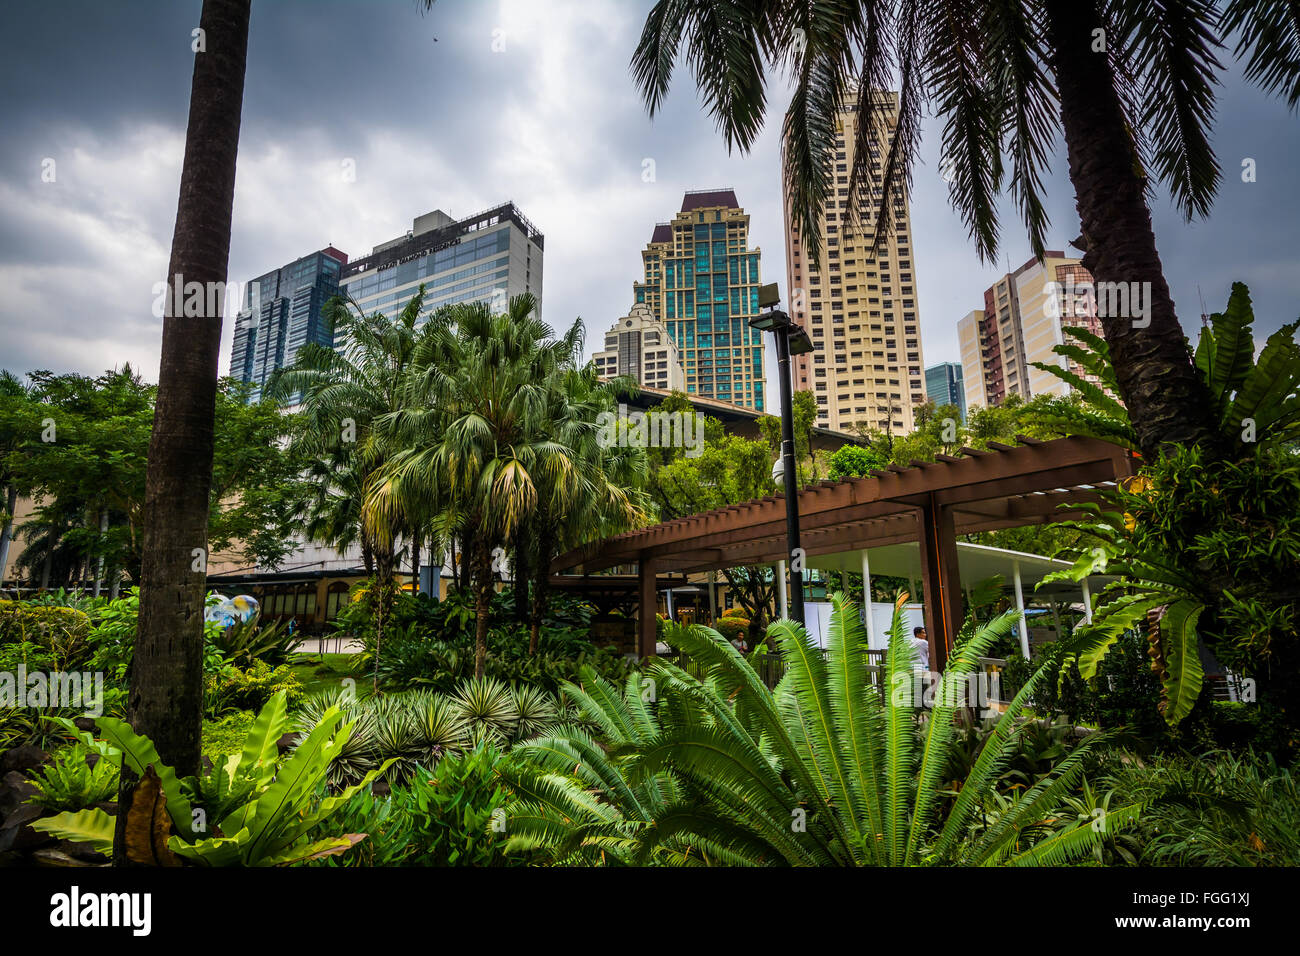 Garden and skyscrapers at Greenbelt Park, in Ayala, Makati, Metro Manila, The Philippines. - Stock Image